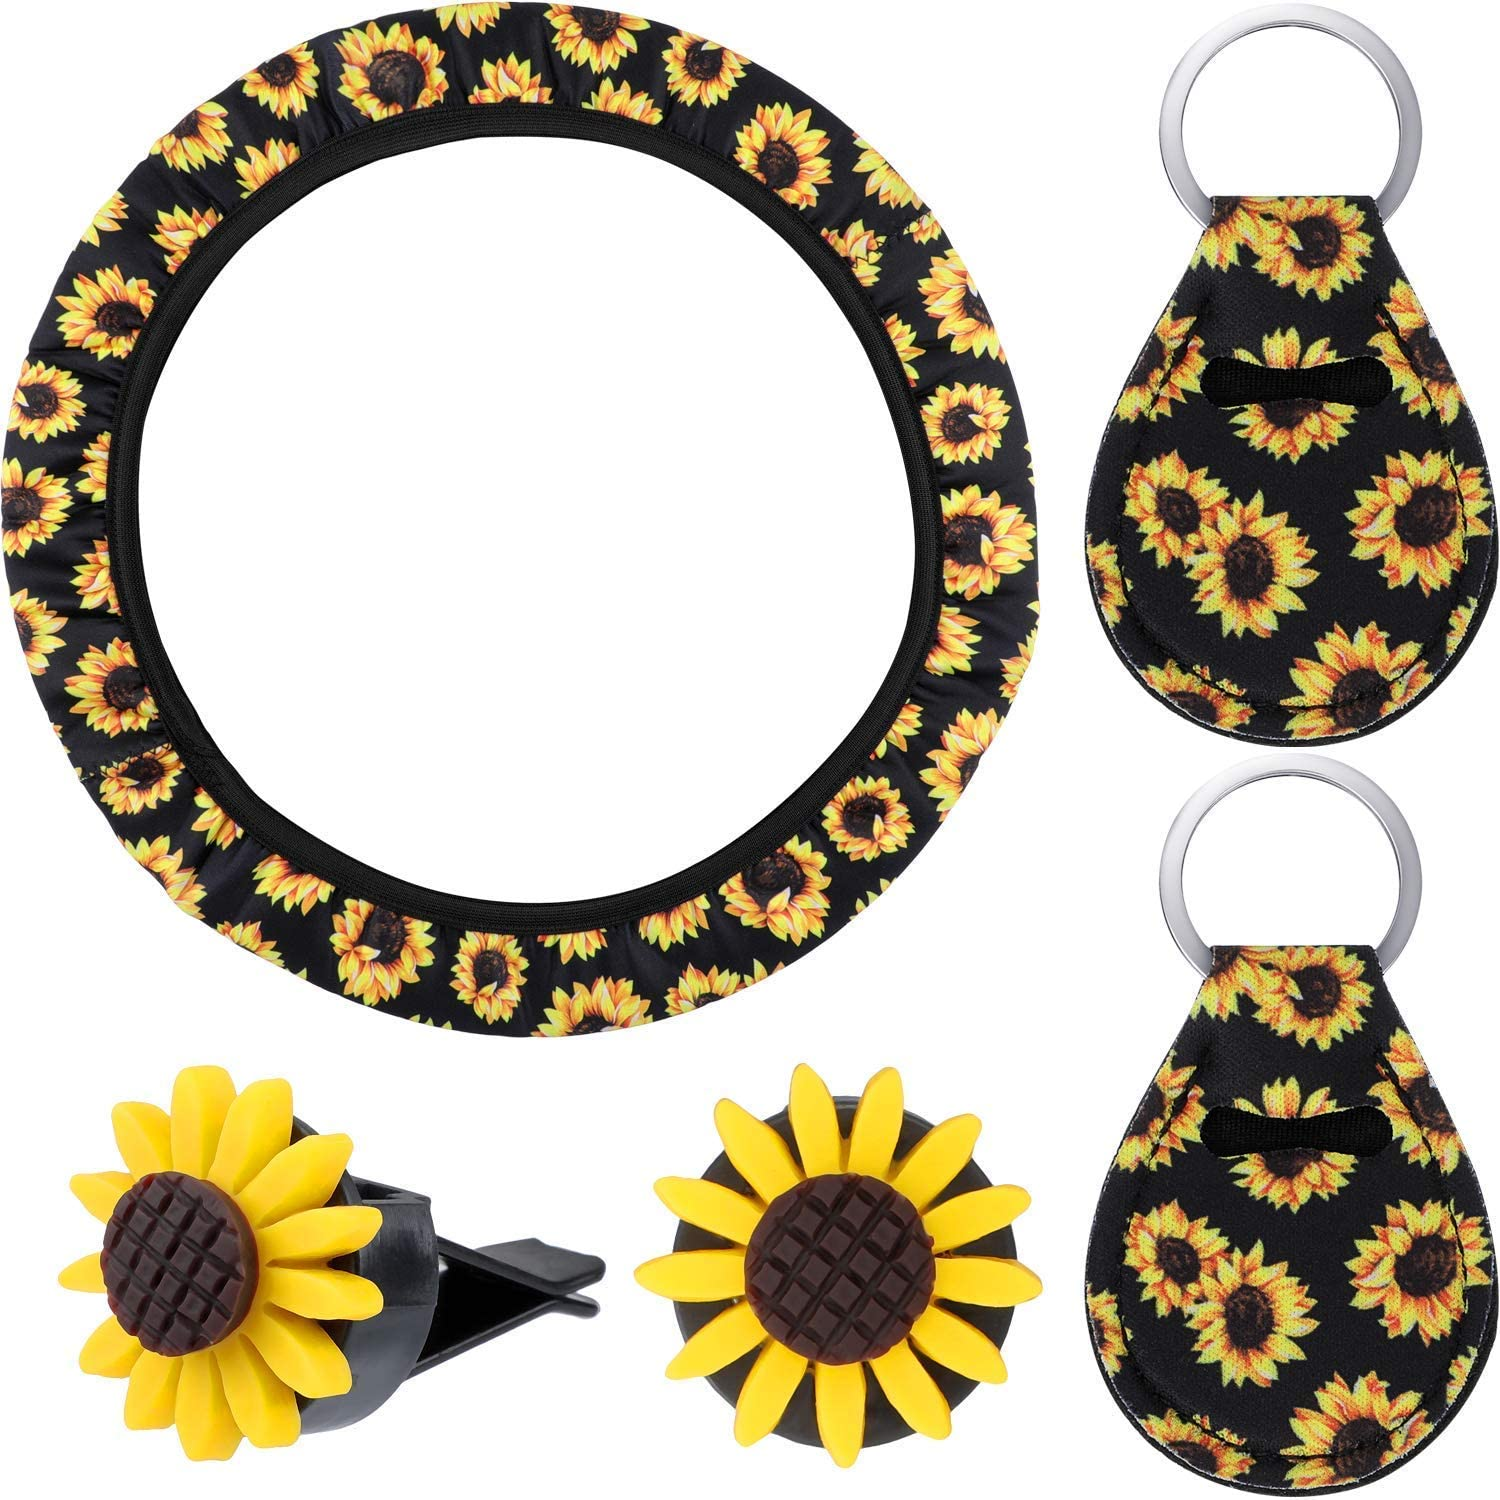 Moligh doll 6Pcs Steering Wheel Cover with Sunflower Steering Wheel Cover Sunflowers Keyring Car Vent and Seat Belt Cover Car